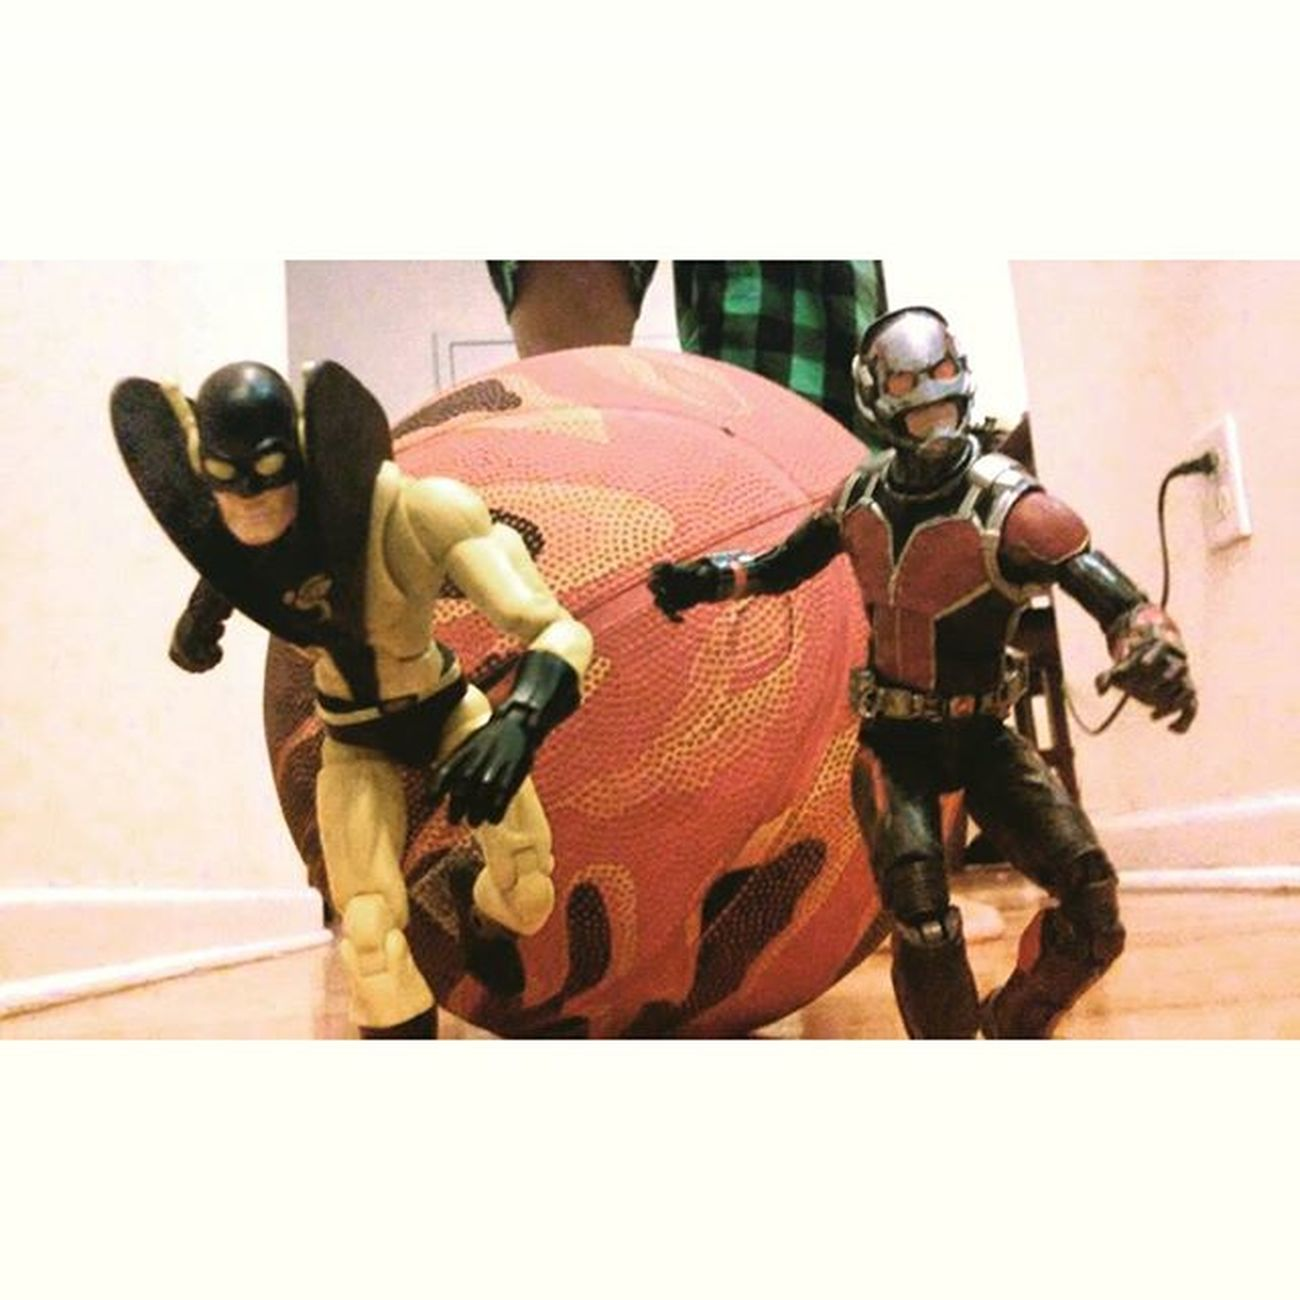 """Hope you get squashed first daron"" ""Well see about that scott"" Antman Yellowjacket Daroncross Scottlang Hankpymm Marvellegends Infiniteseries Toybiz Toysrmydrug Toys4life Toyslagram Figures Actiontoyart Avengers Actionfigures Disney Articulatedcomicbook Actionphotography Nerd Comics Figurecollection Tcb_peekaboo Hasbro Tcb_flyupandaway Collector collection mcu marvelentertainment"